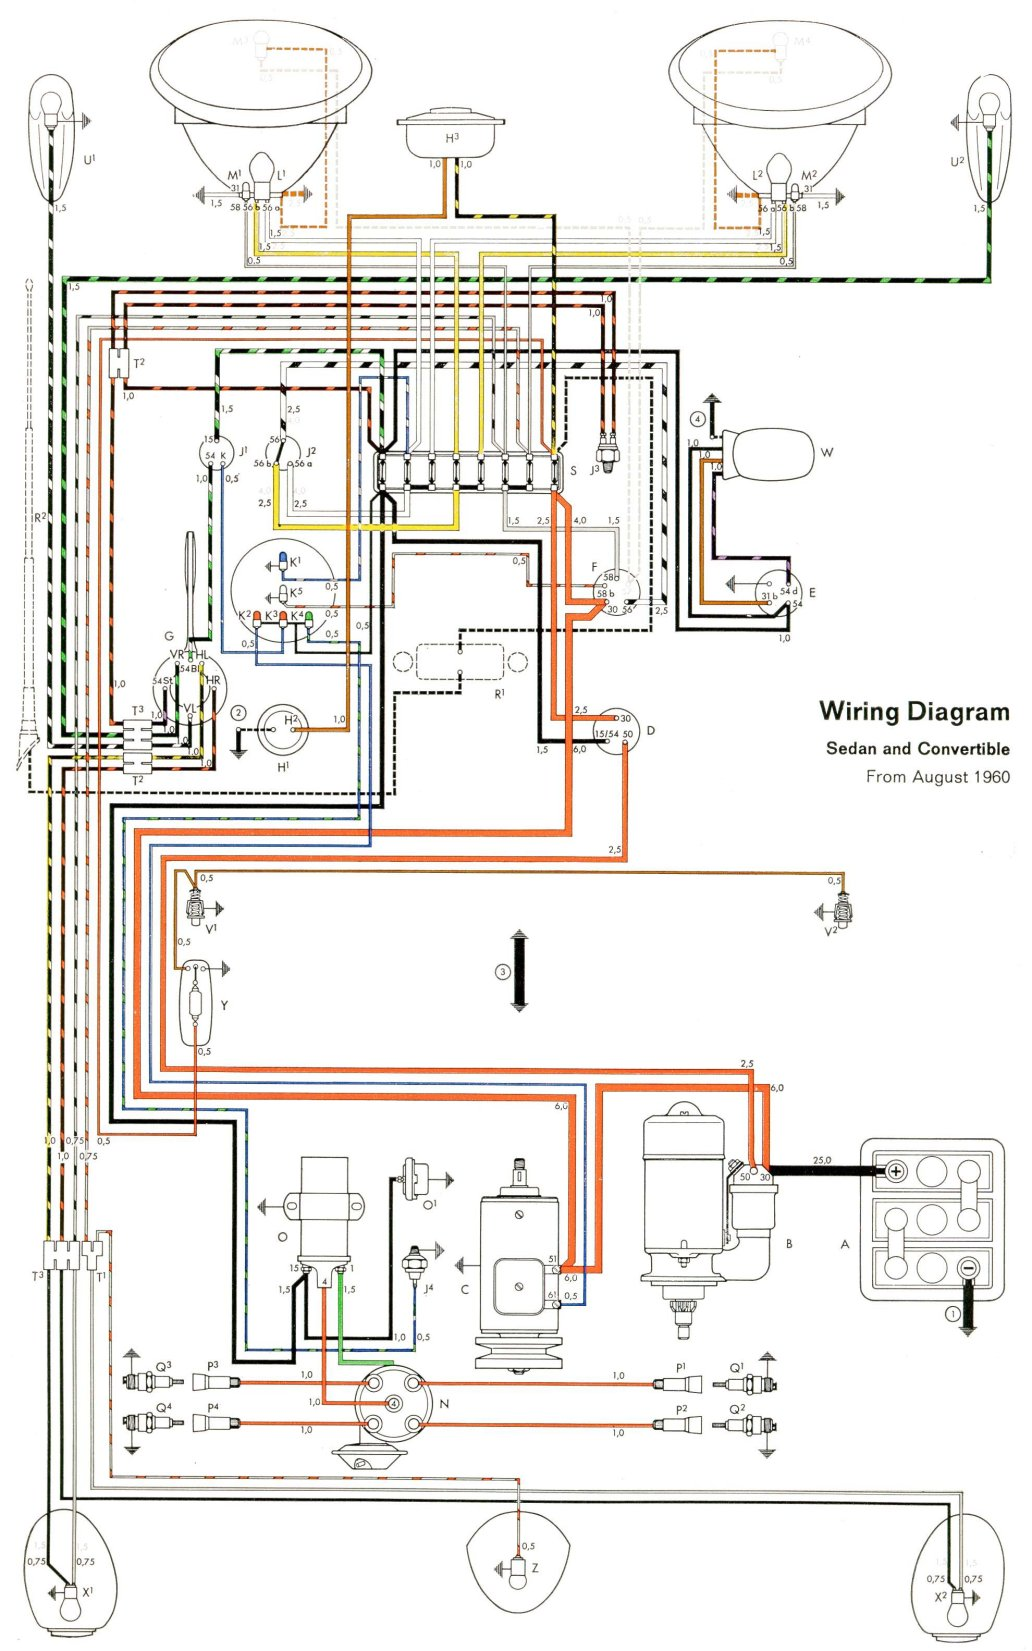 Vw Wiring Harness Diagram Guide And Troubleshooting Of Volkswagen Dune Buggy Thesamba Com Type 1 Diagrams Rh Mk3 2001 Passat